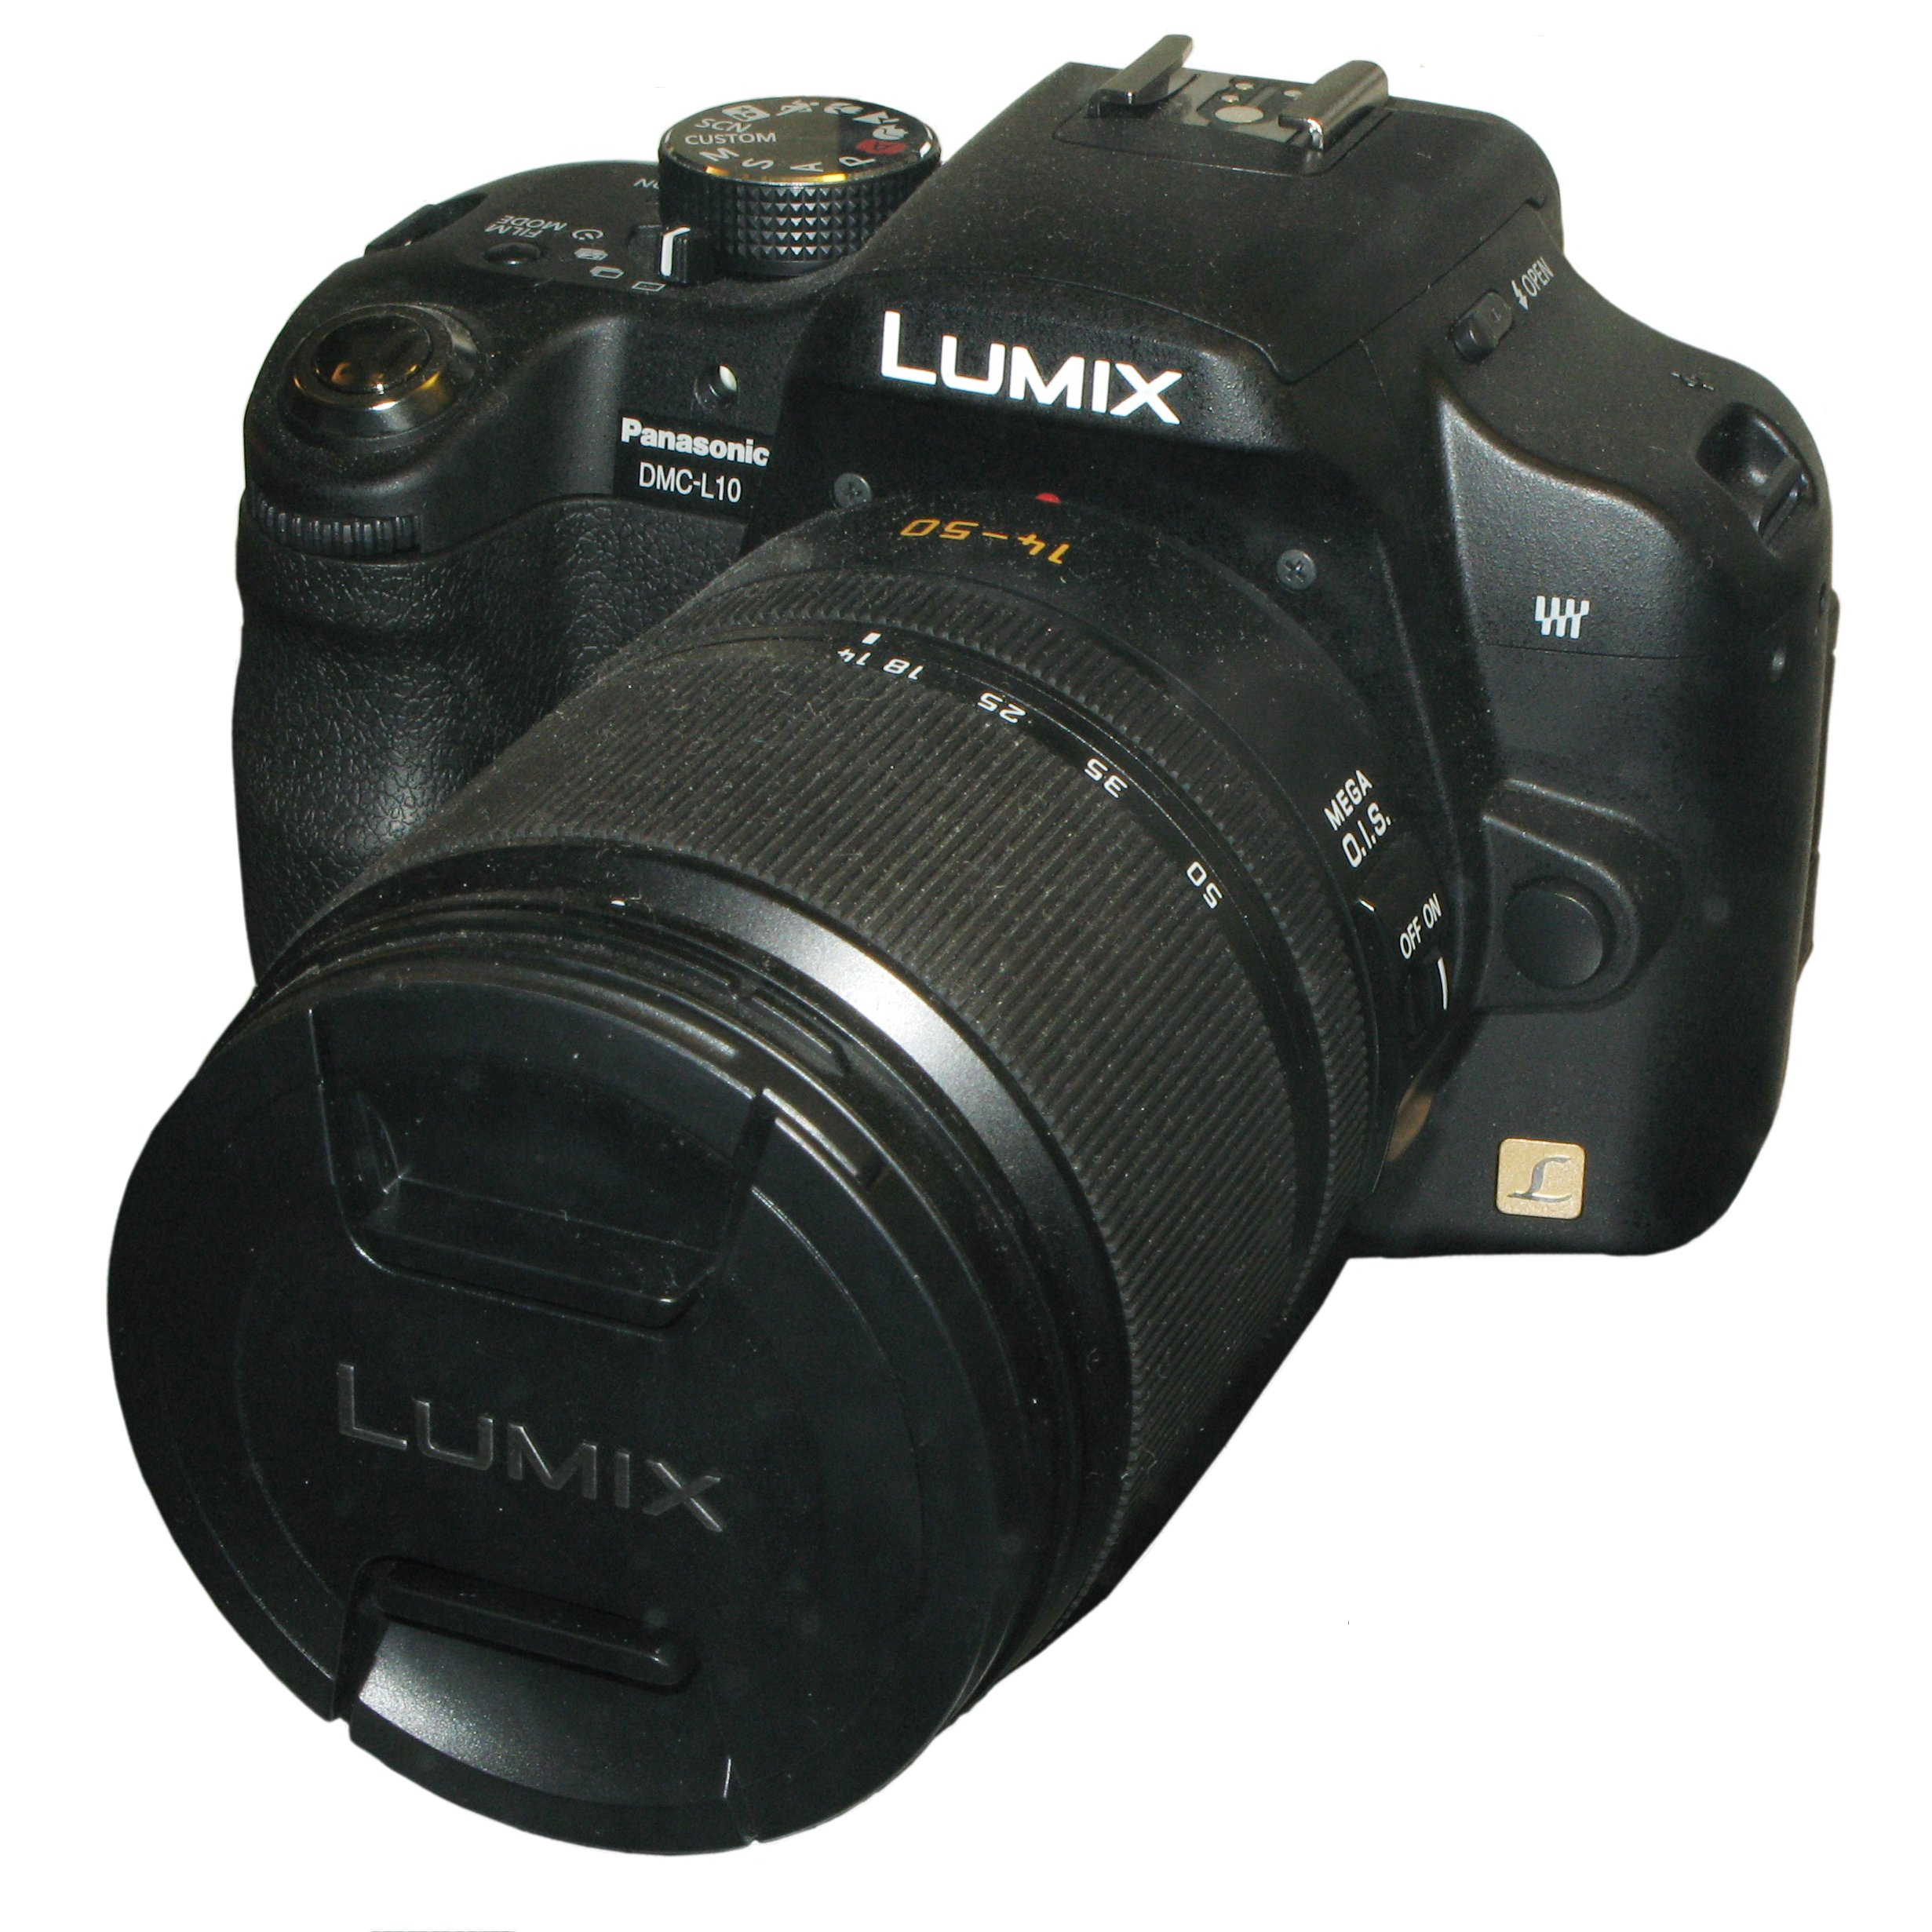 Camera Panasonic Lumix Dslr Camera panasonic lumix dmc l10 wikiwand